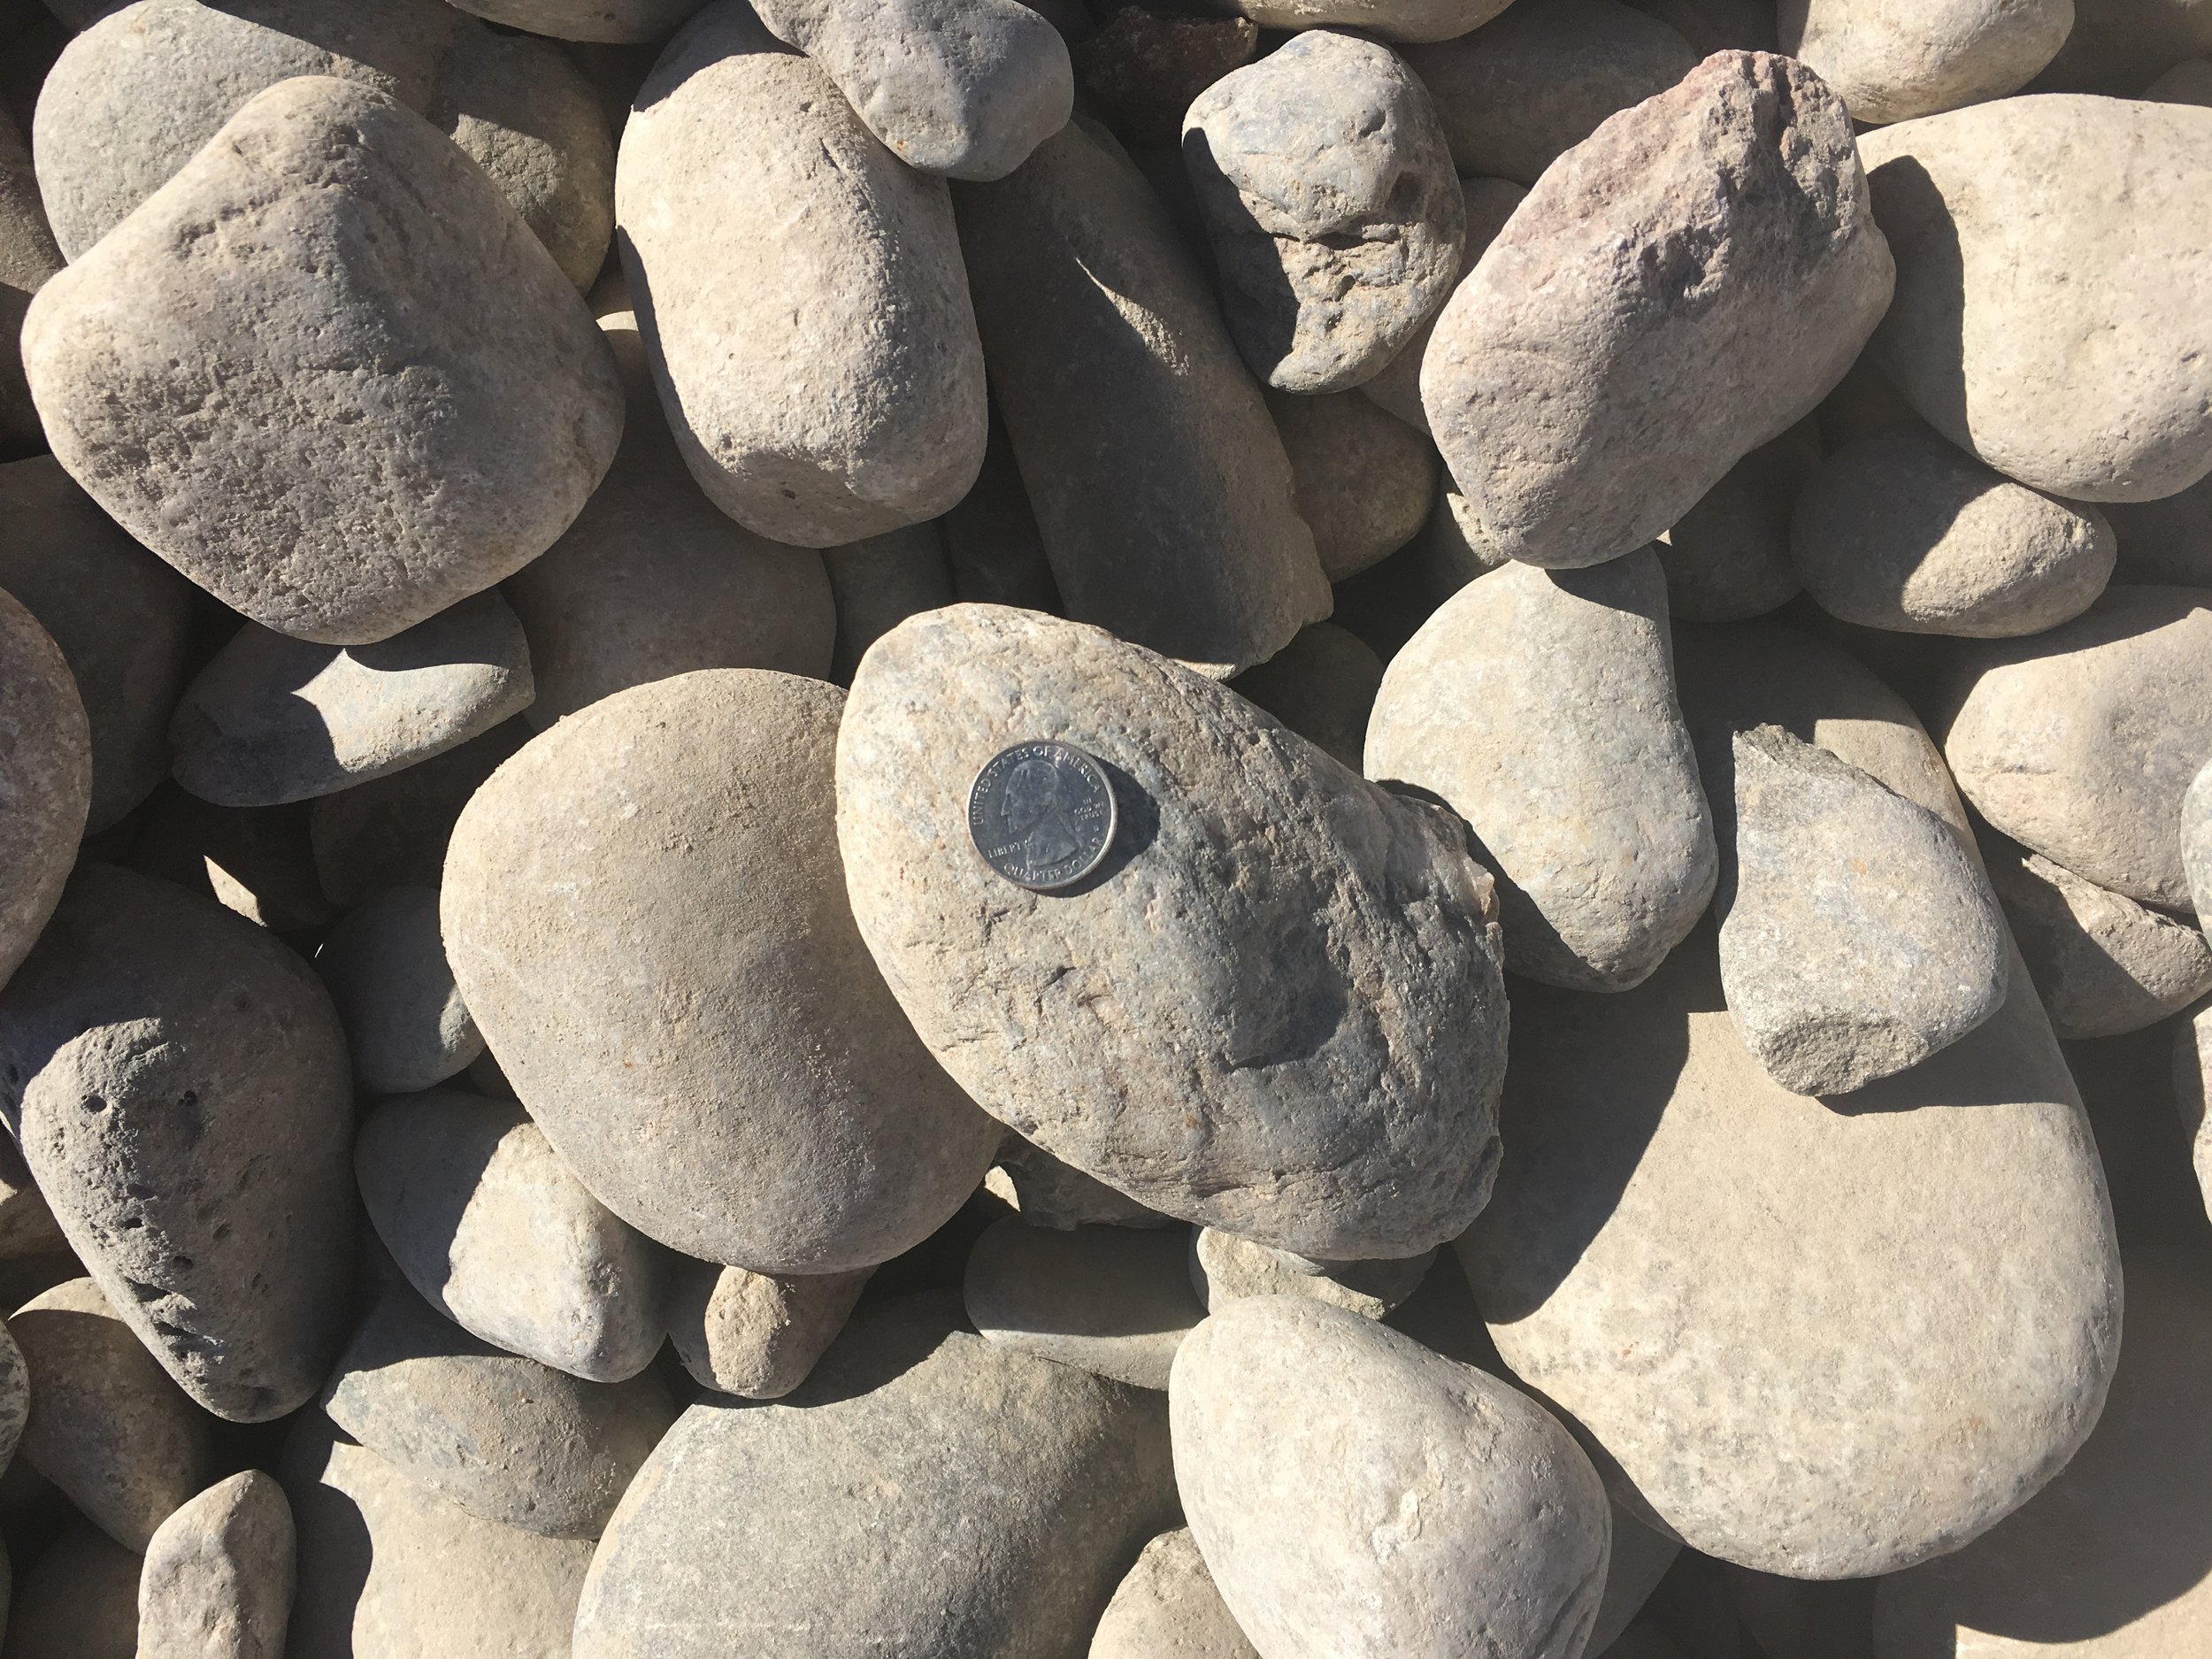 "2-4"" Round  Small to medium sized cobble rock used for erosion protection, sewer leach fields and landscaping"